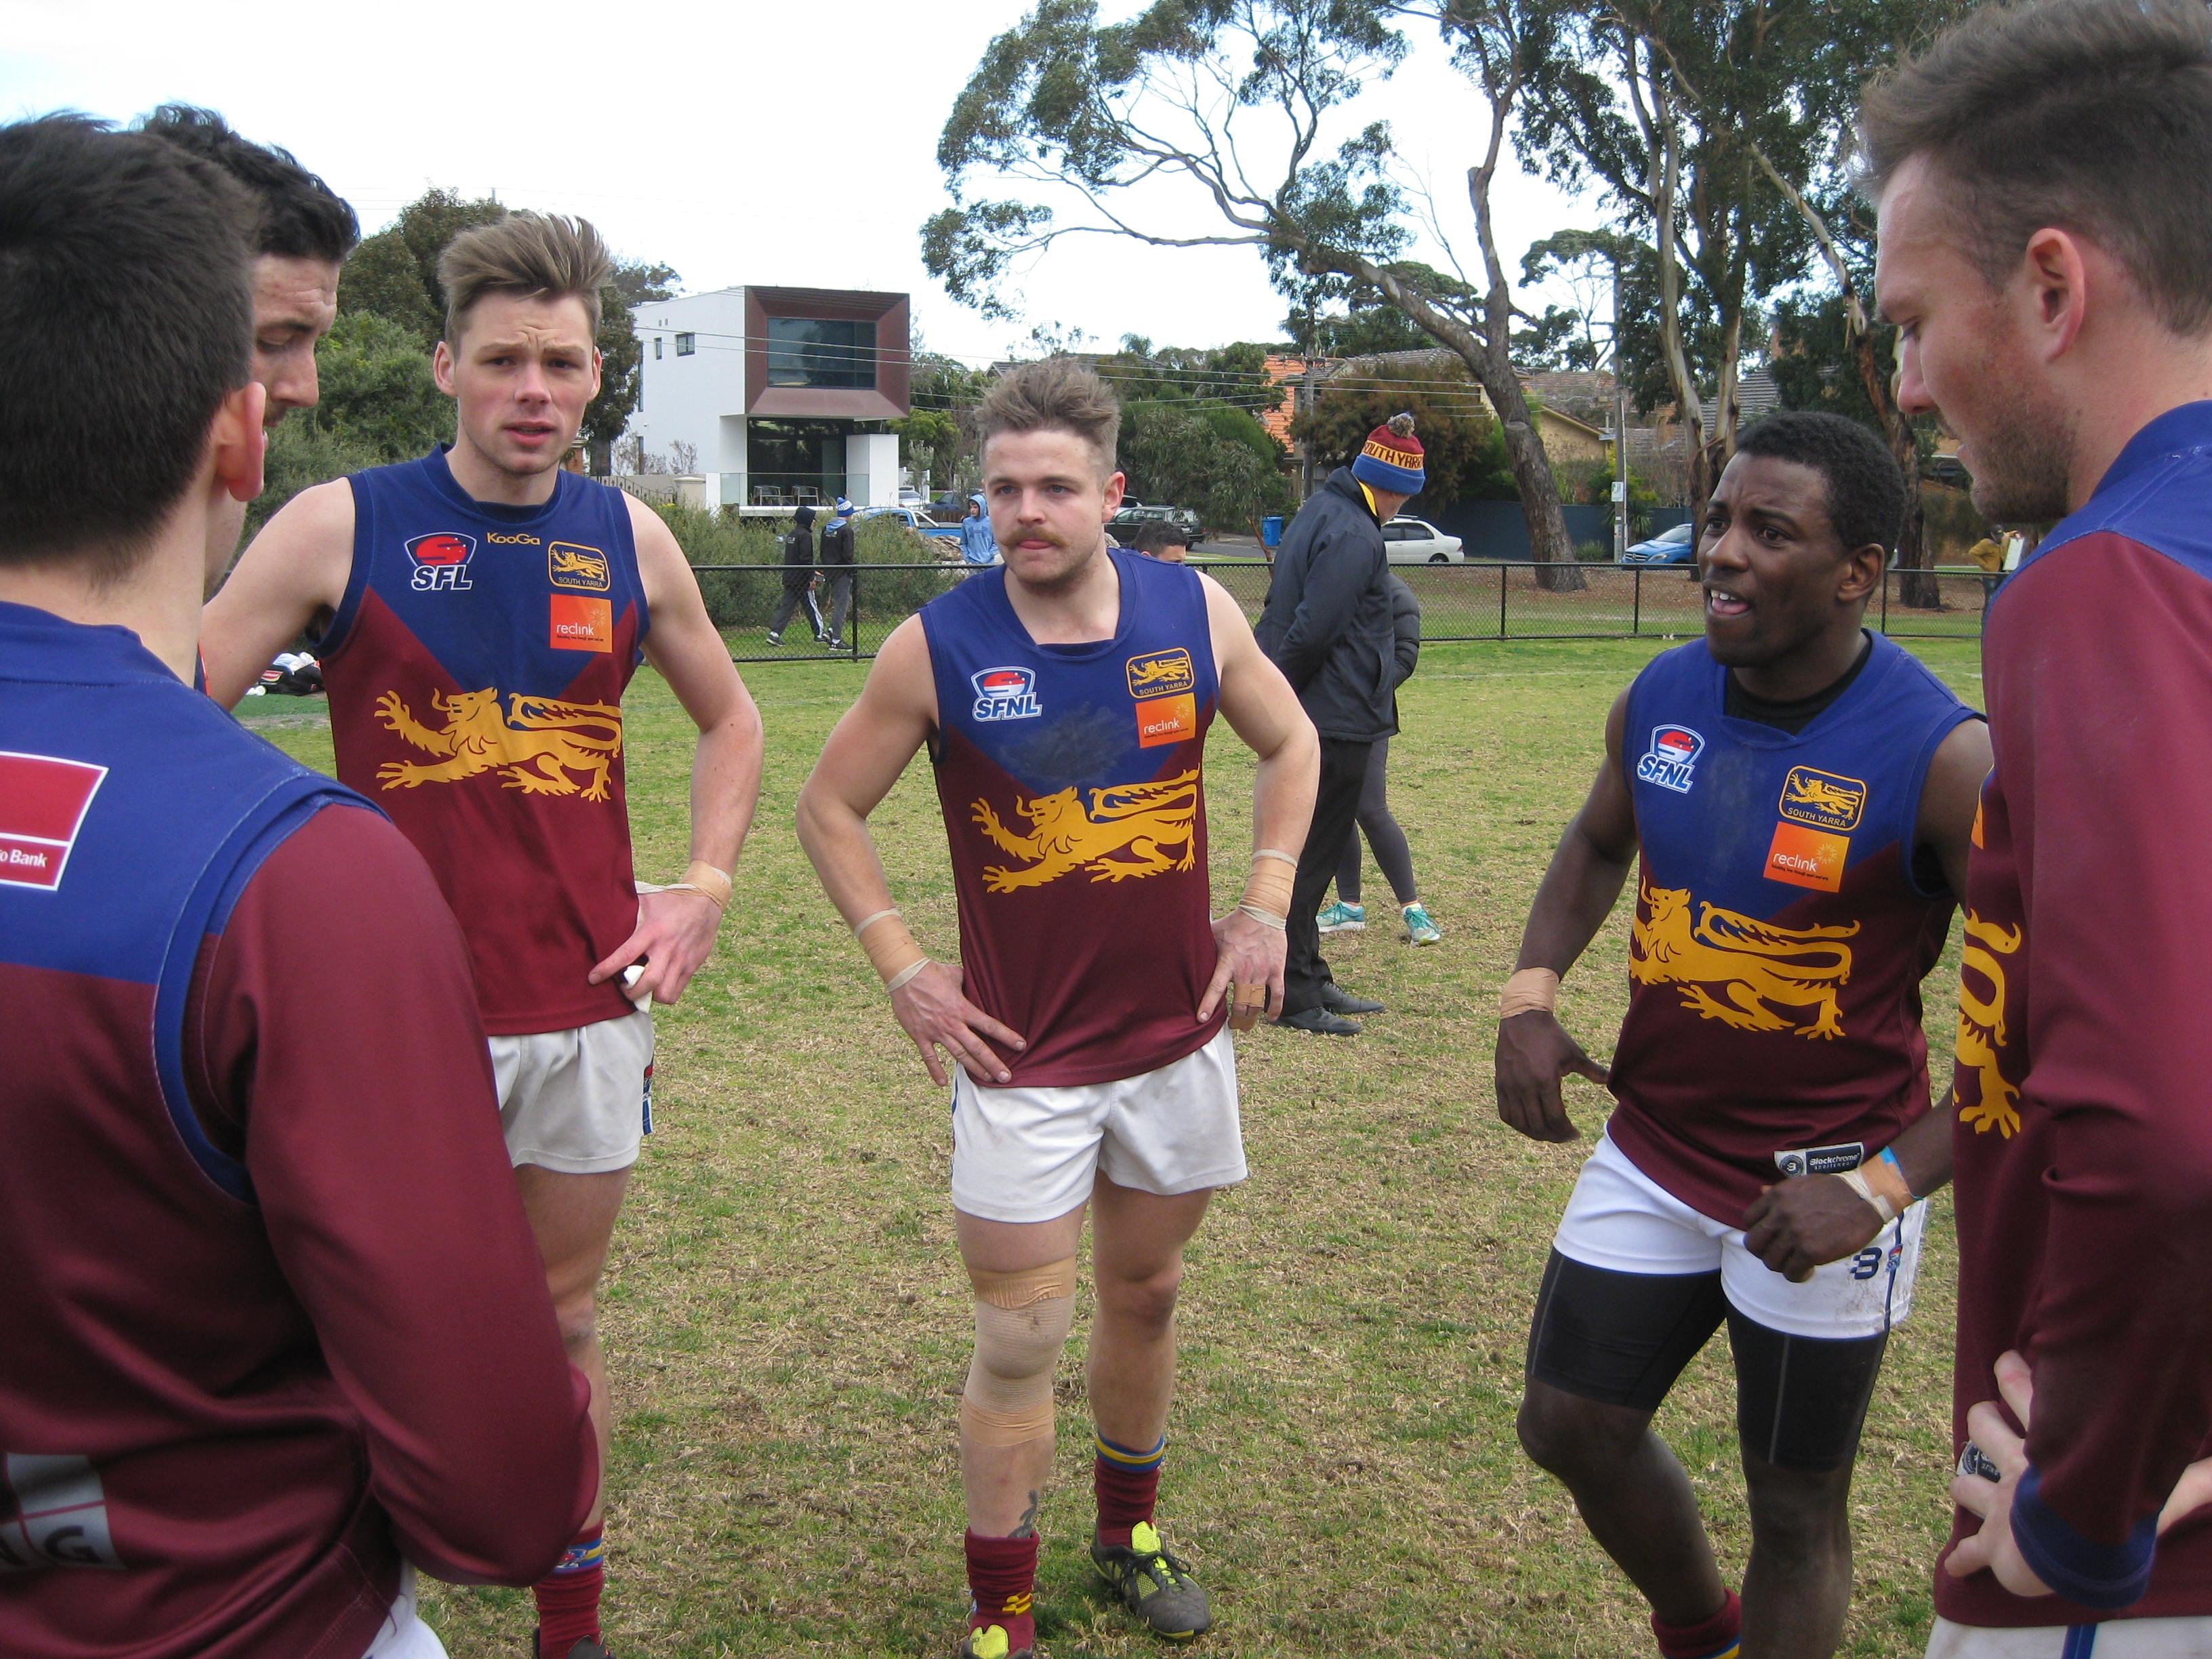 Mwaba (second from right) in the South Yarra huddle.